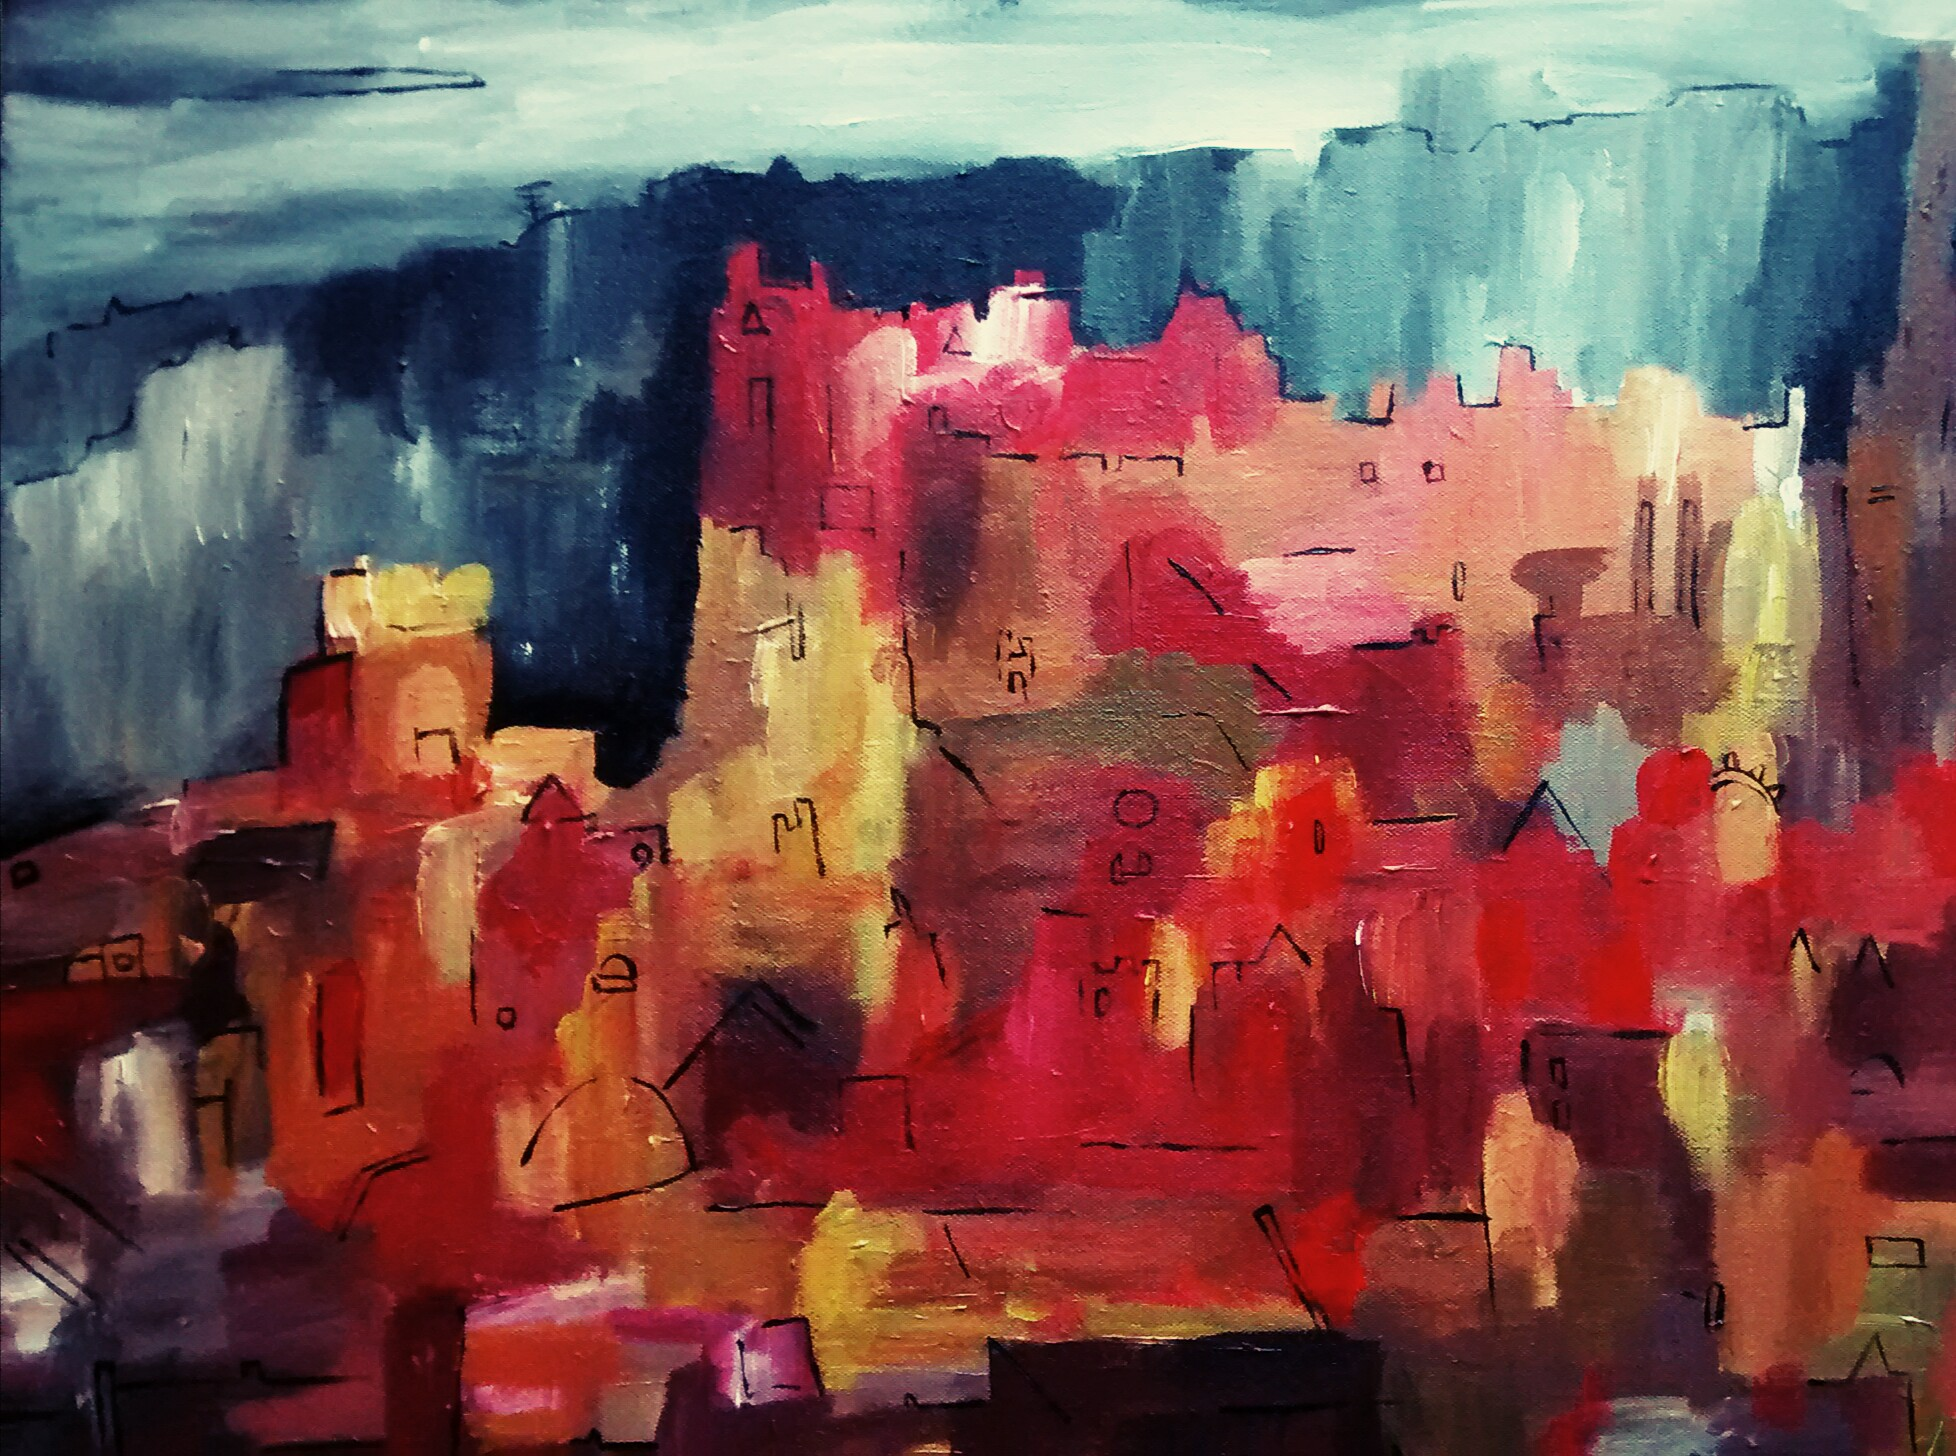 Edinburgh Castle Oct 2014 40x50cm 150 euros